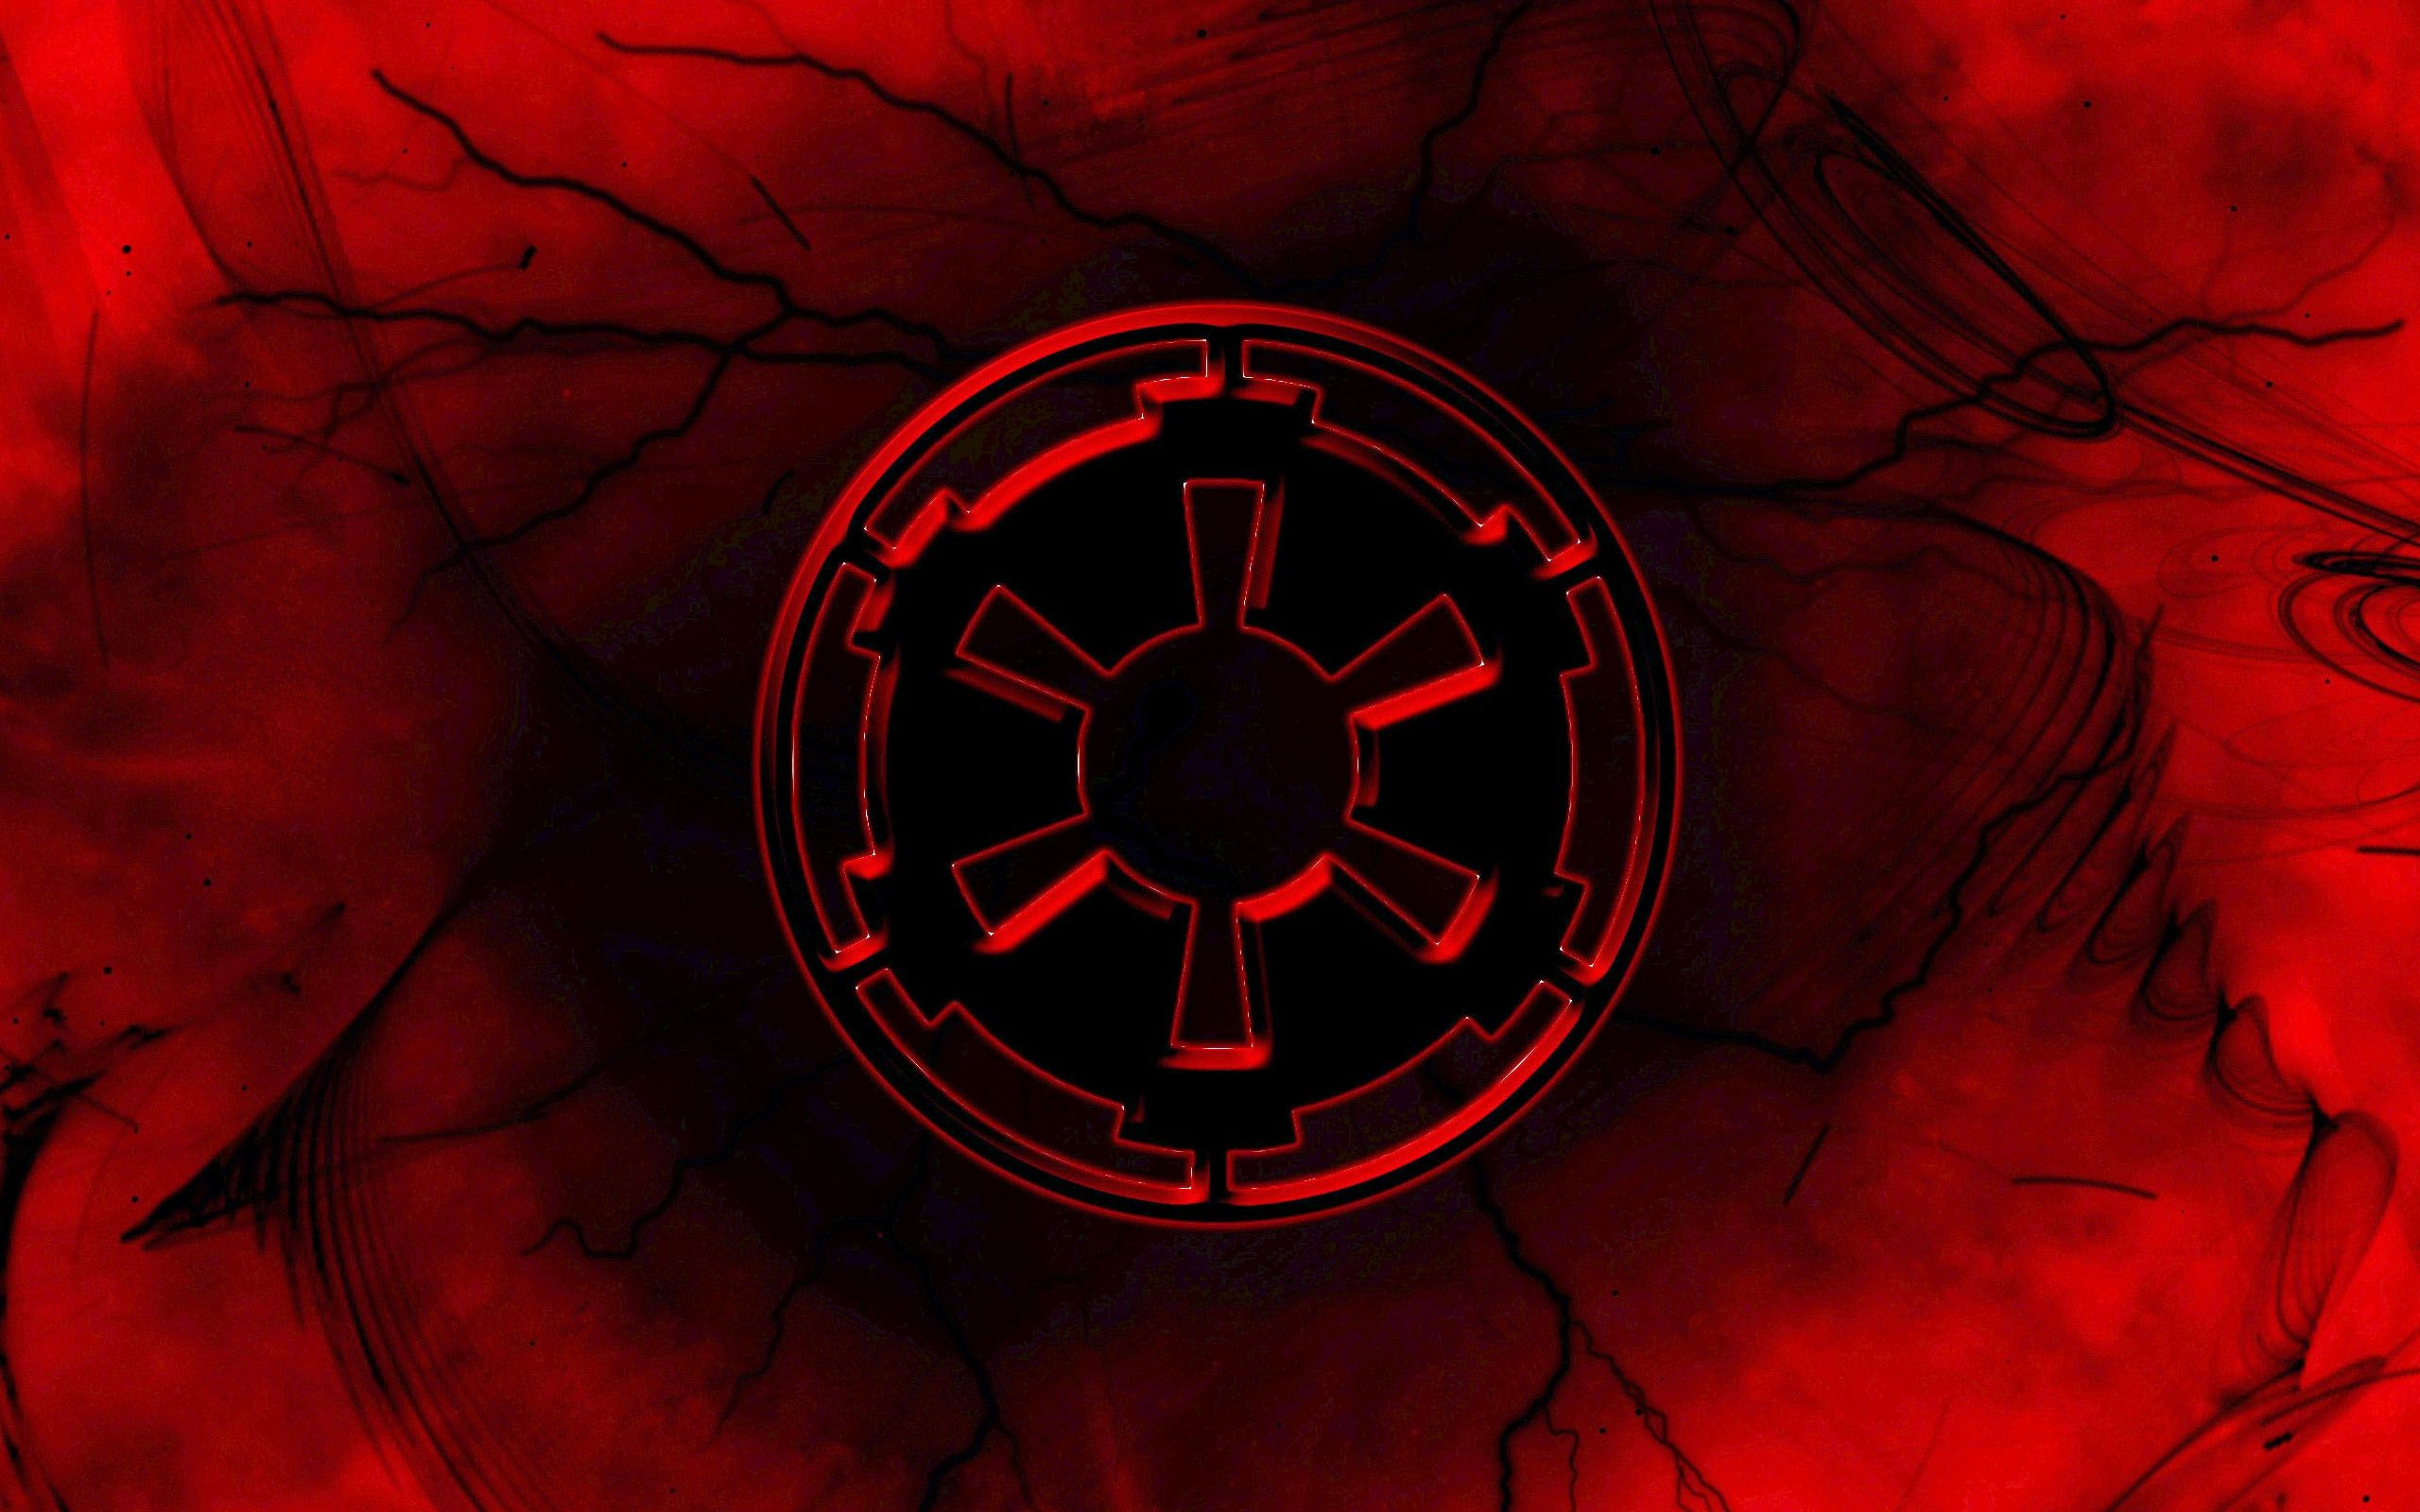 2560x1600 Star Wars Sith Wallpapers Desktop Background As Wallpaper HD